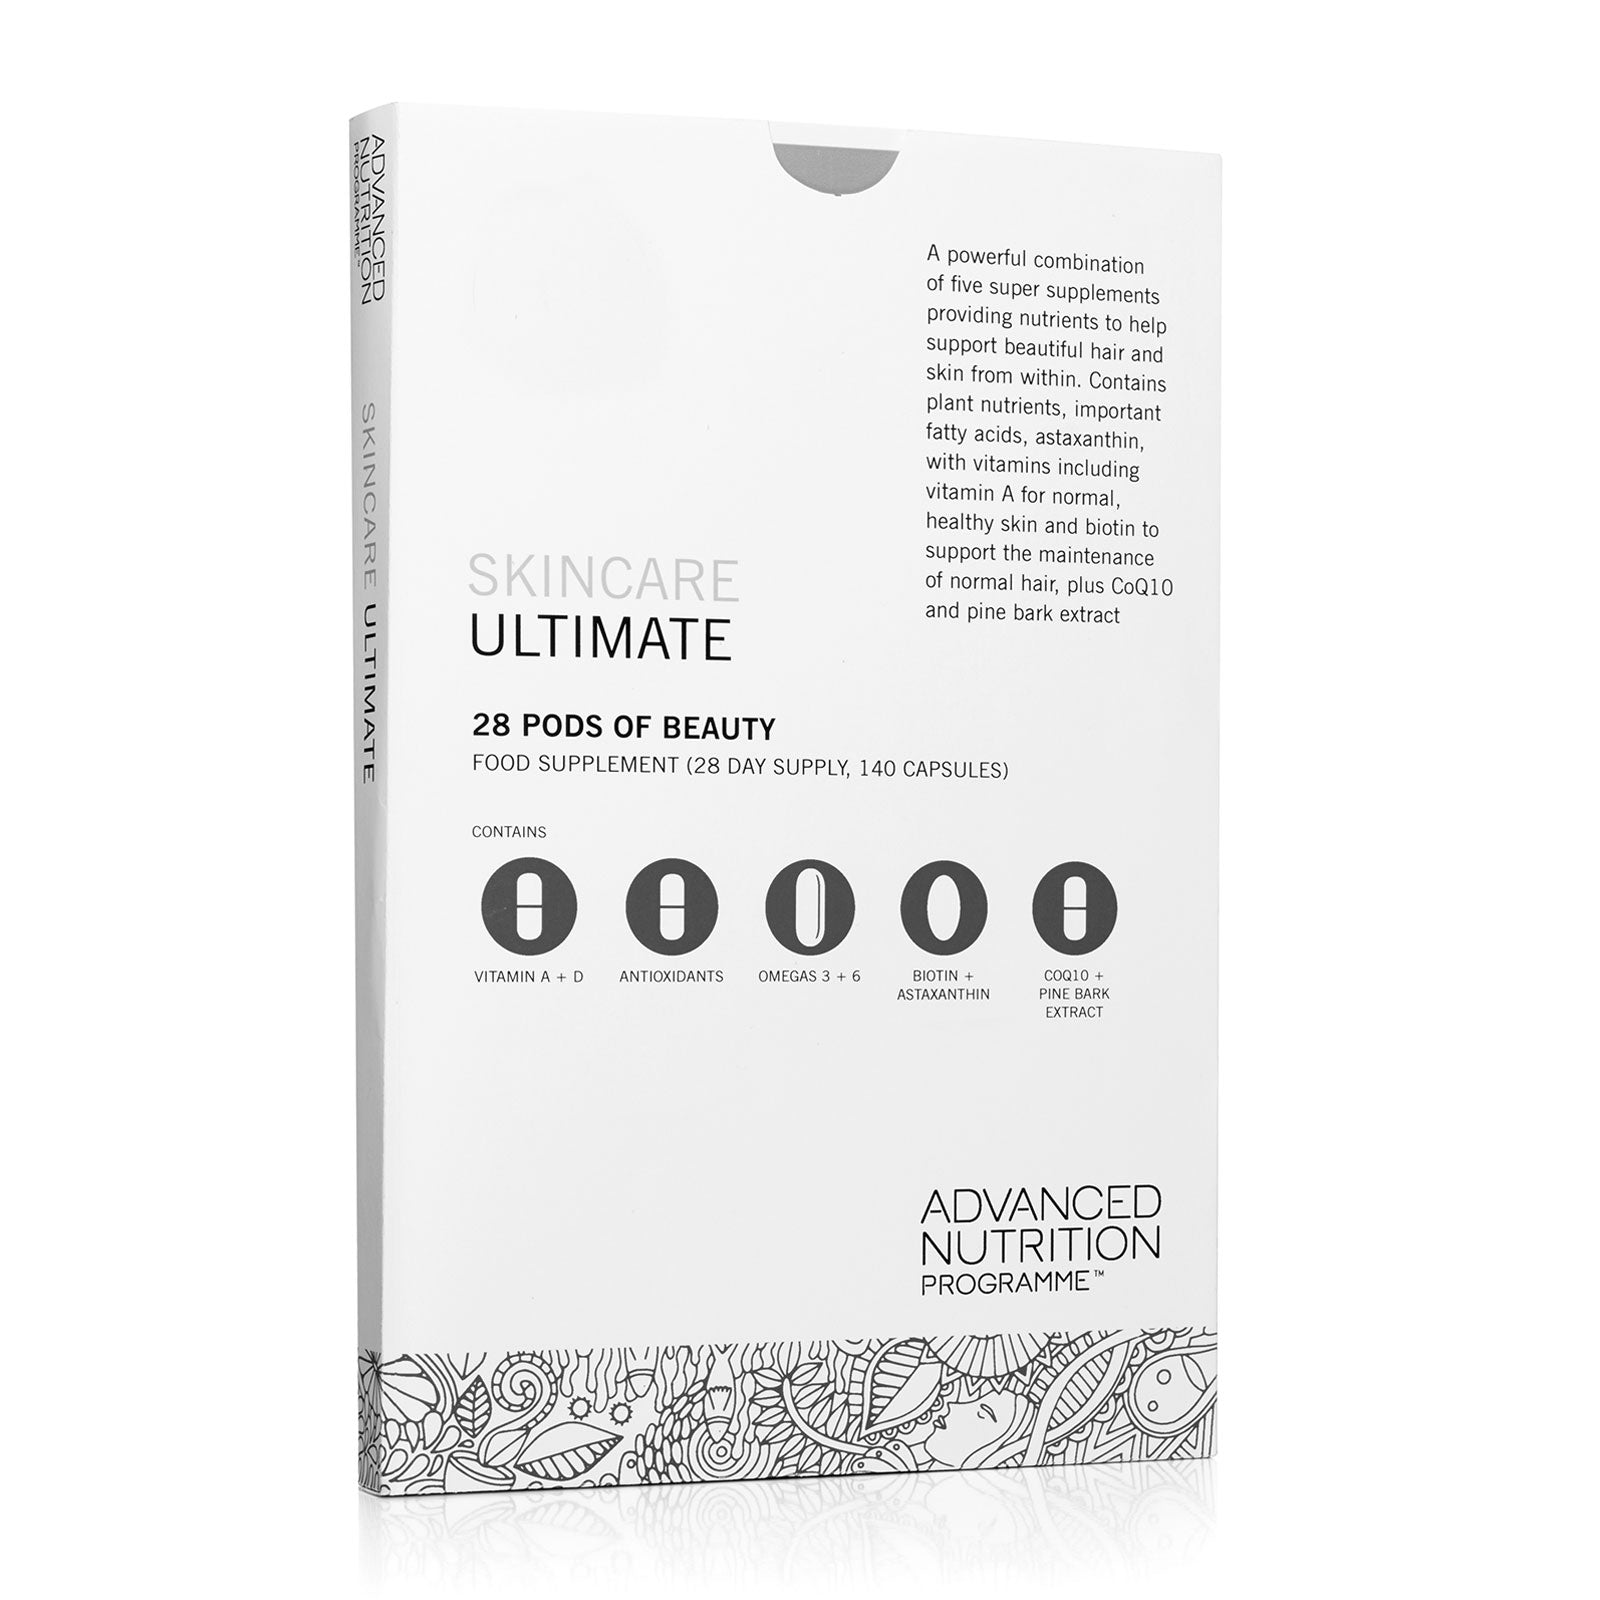 Advanced Nutrition Programme™ Skincare Ultimate Food Supplement 28 Day Supply